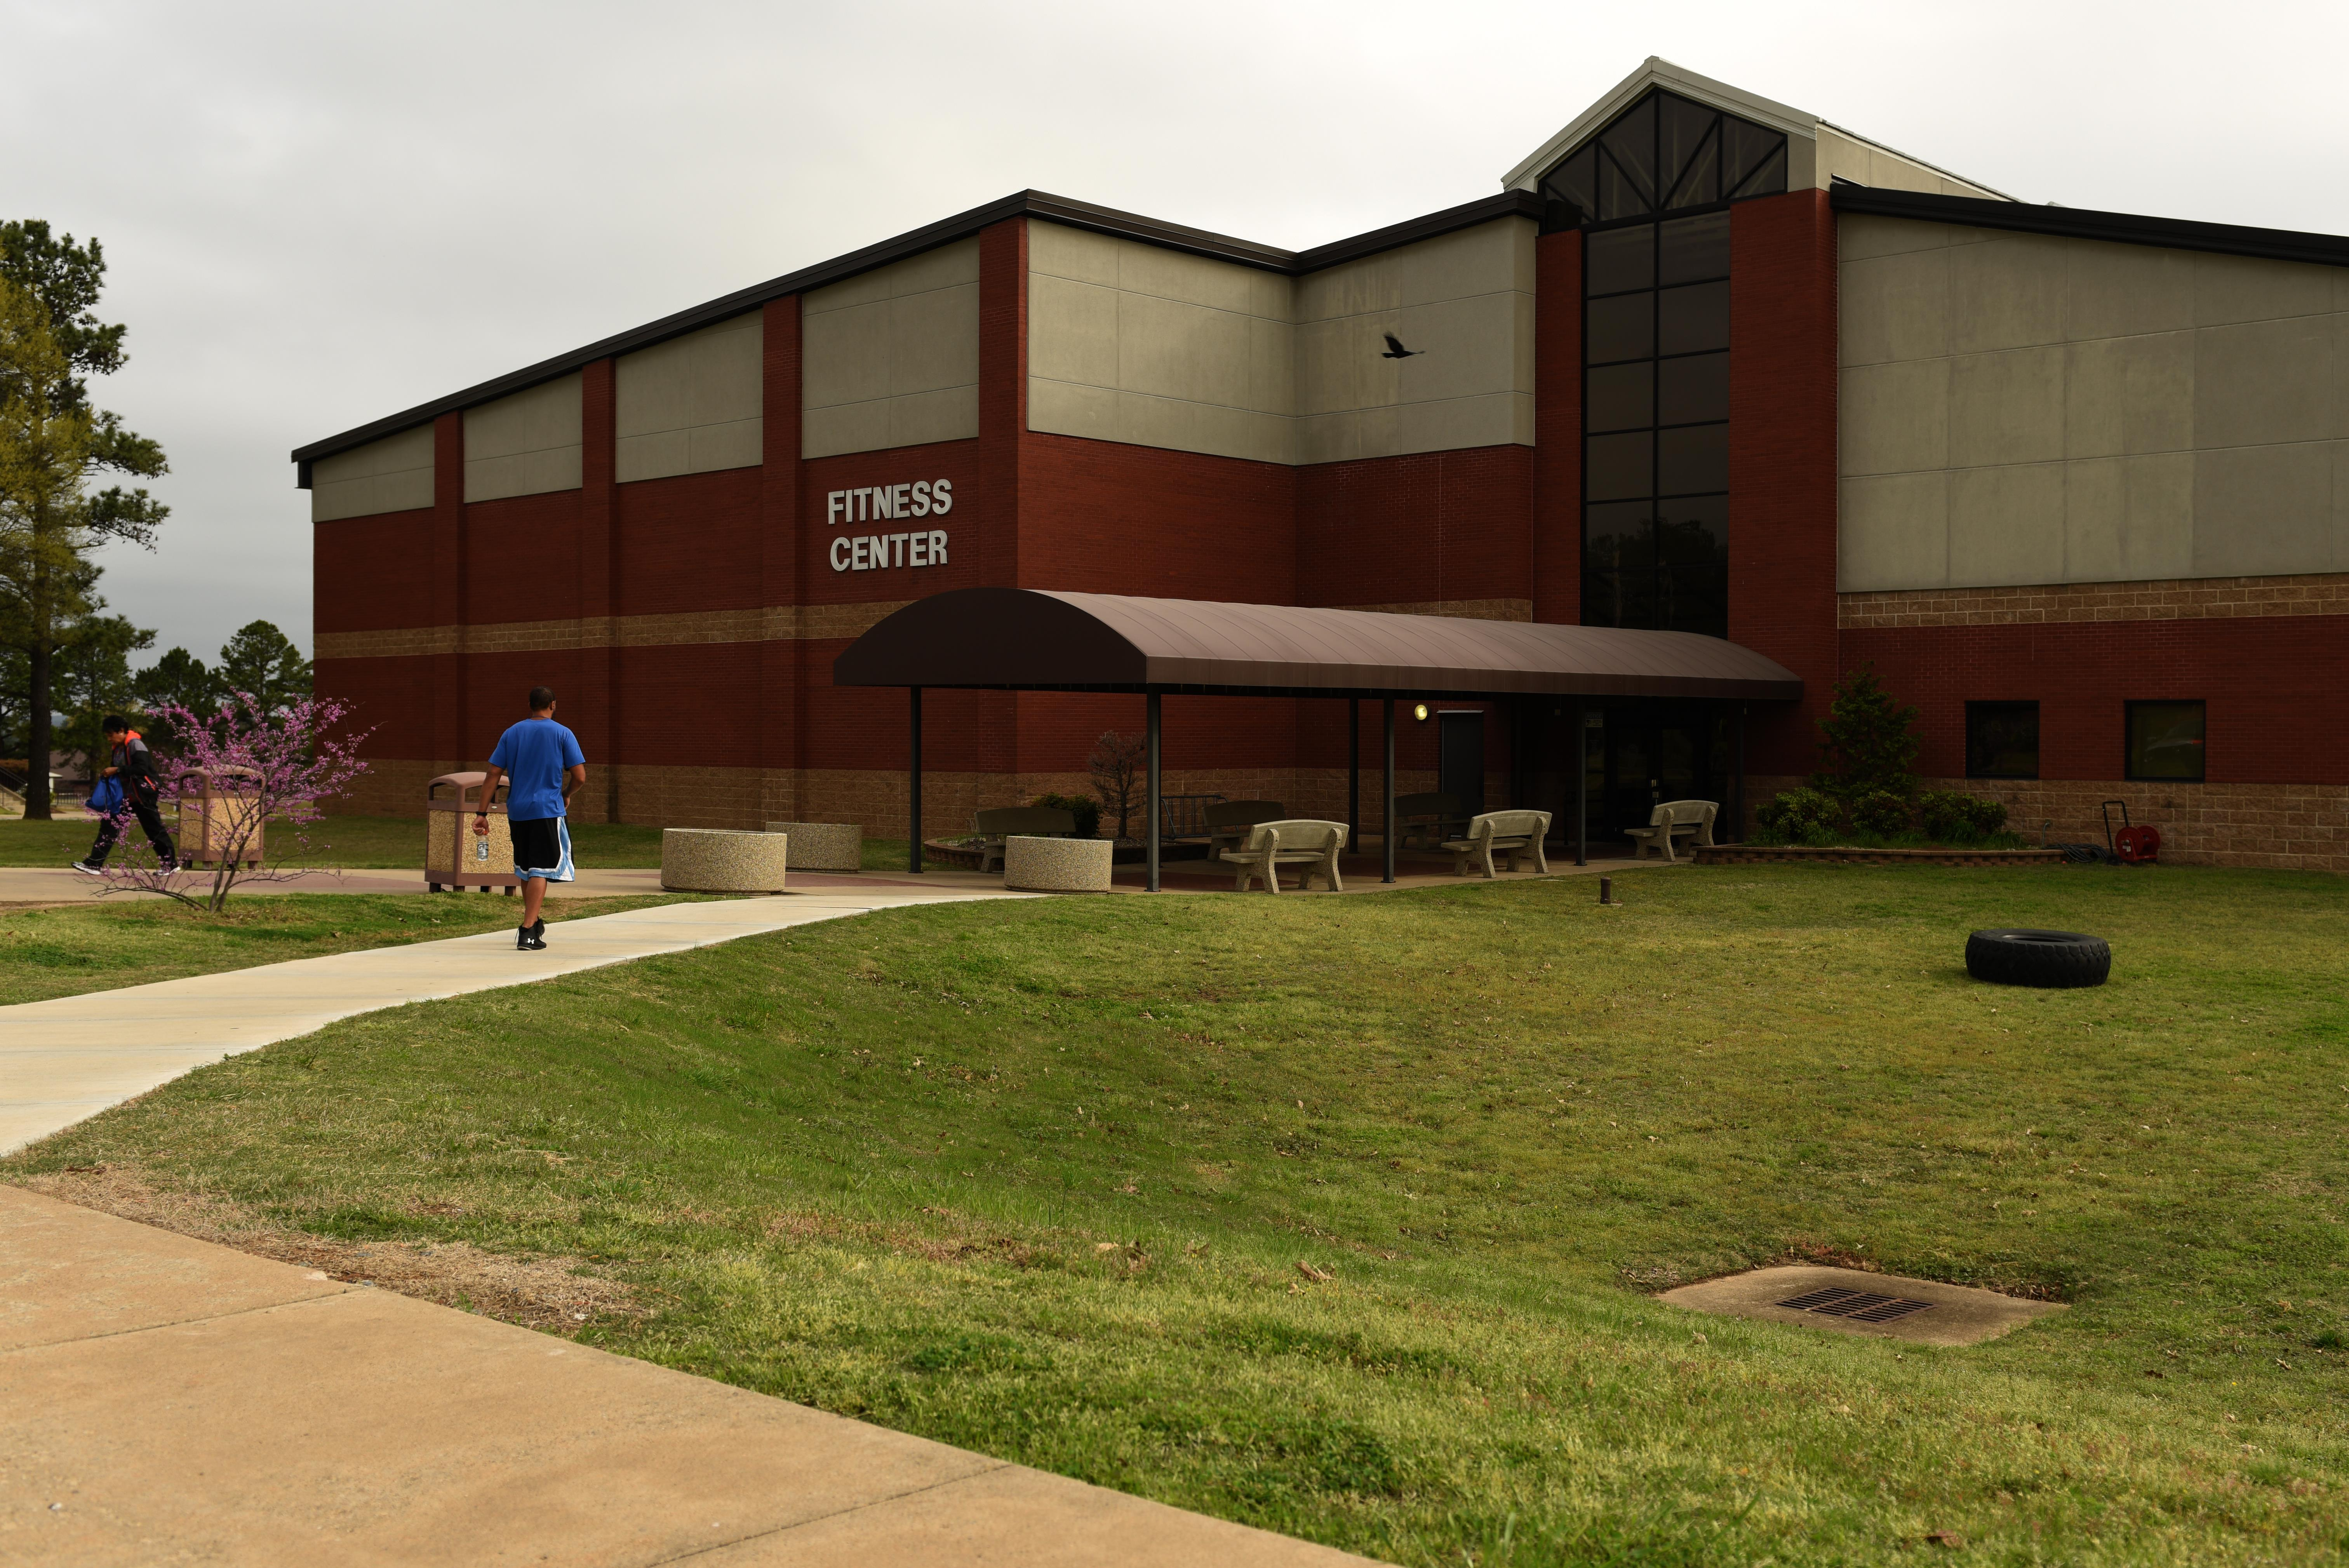 Gym Revamps 24 7 Access System For Airmen Gt Little Rock